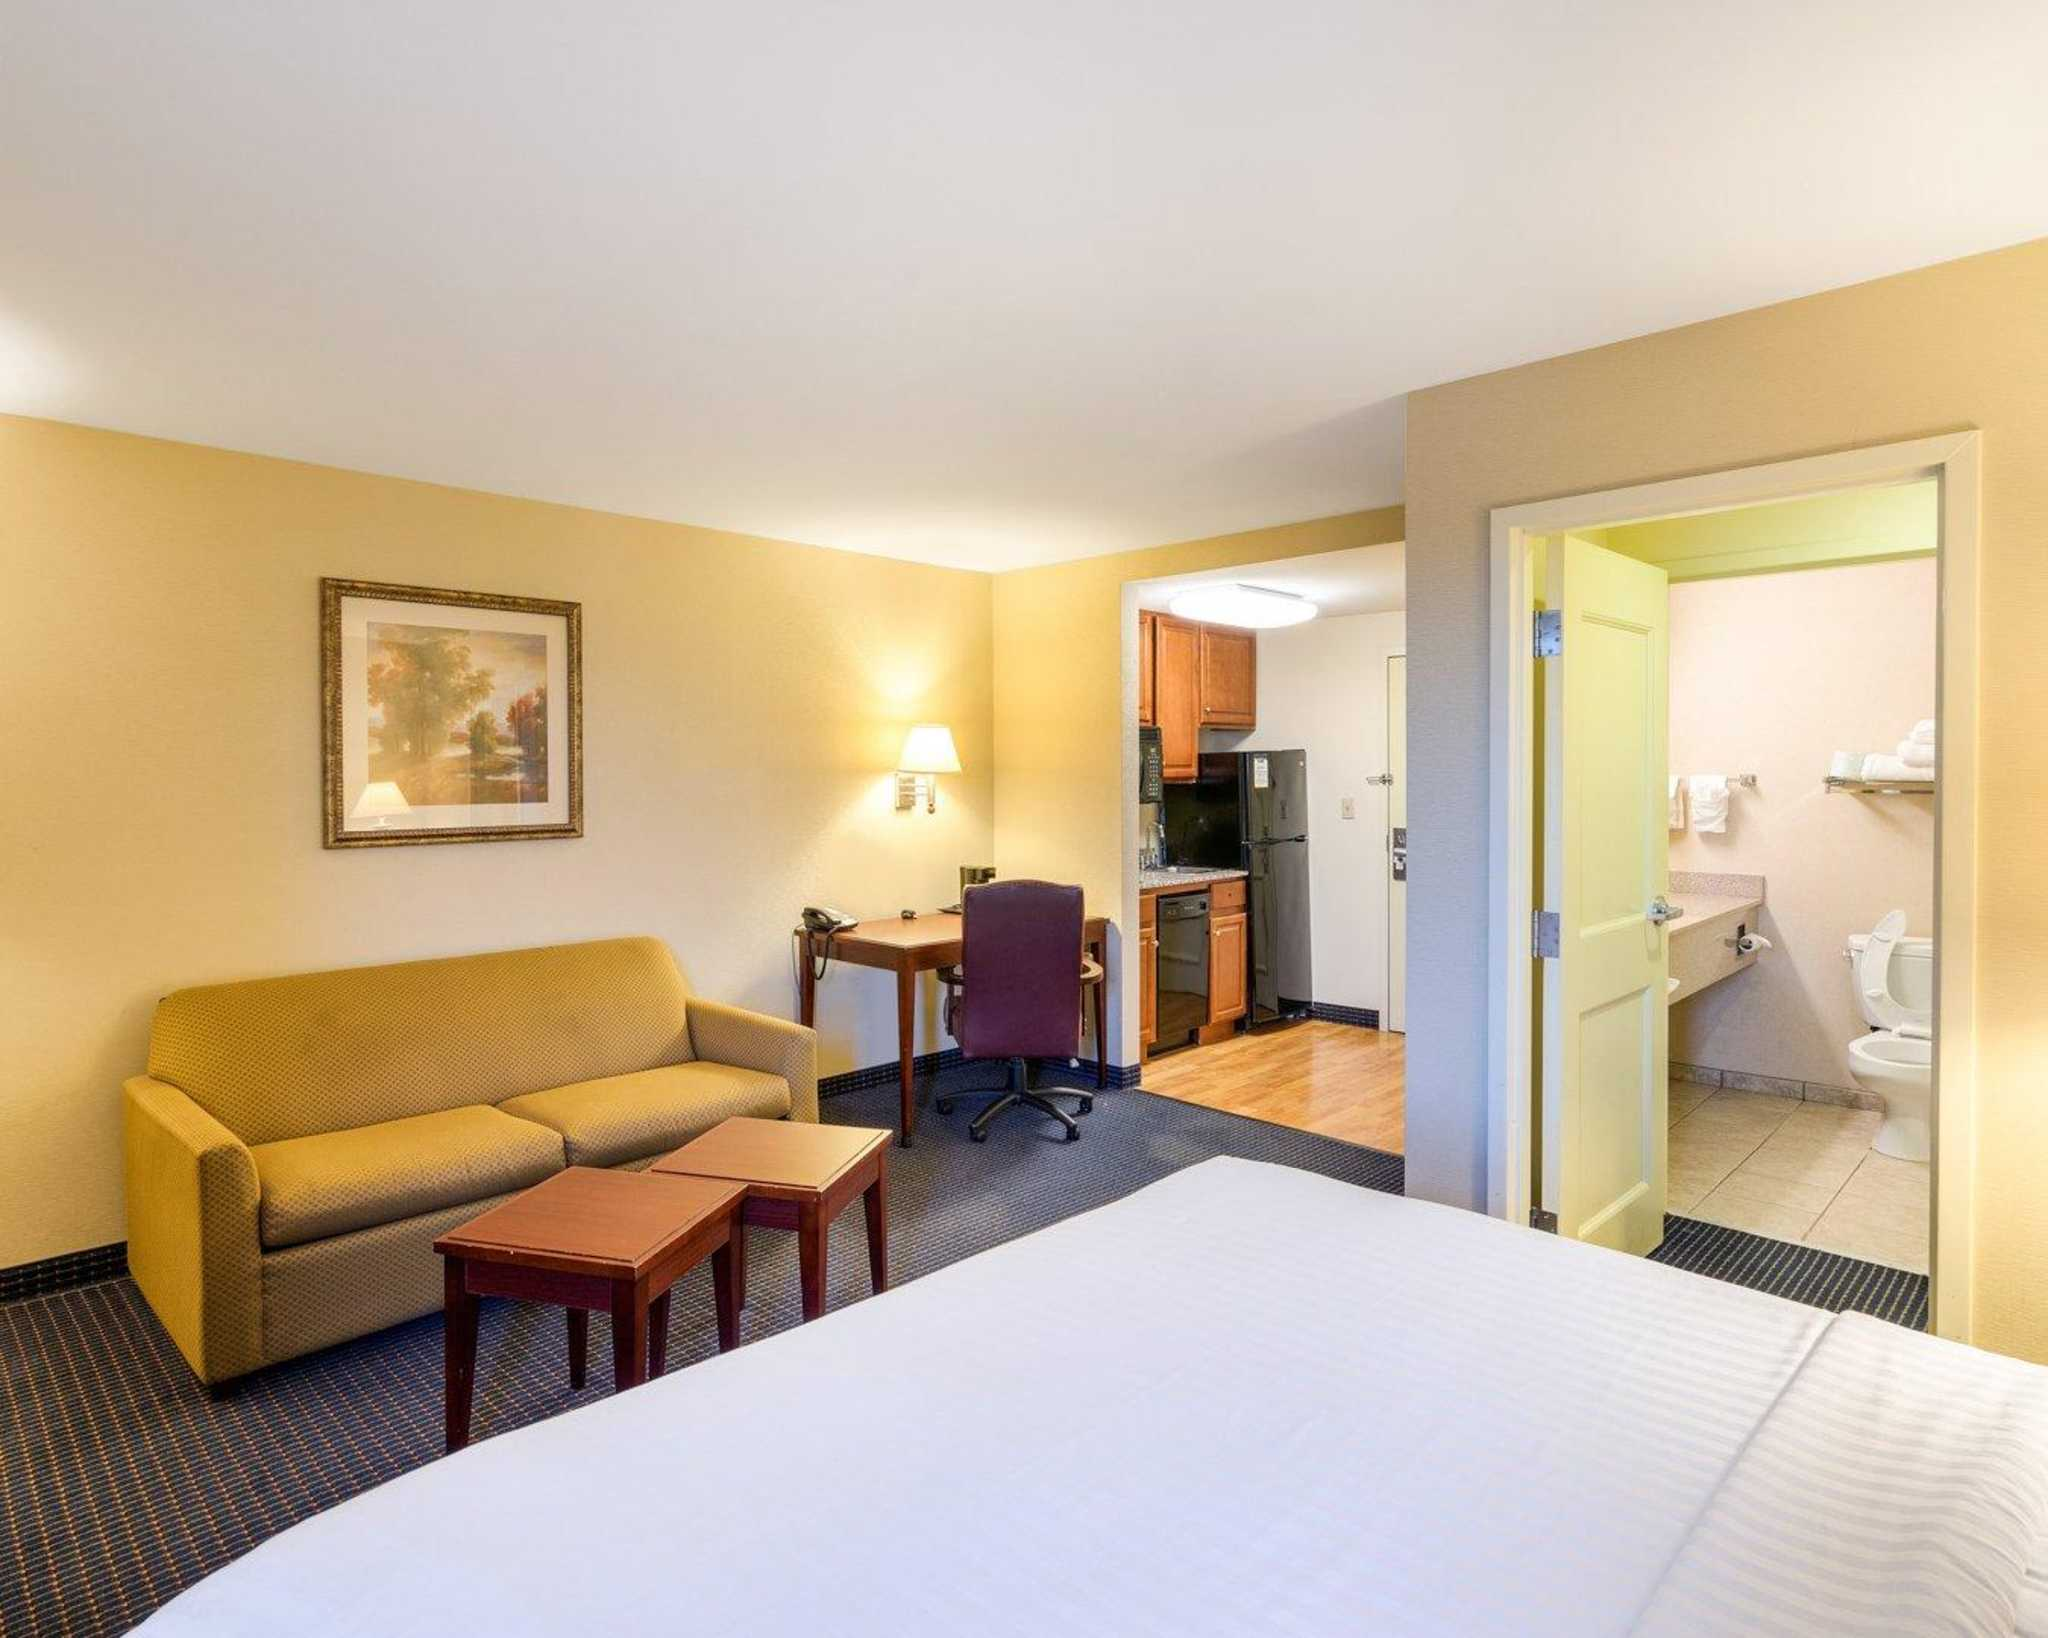 MainStay Suites image 12